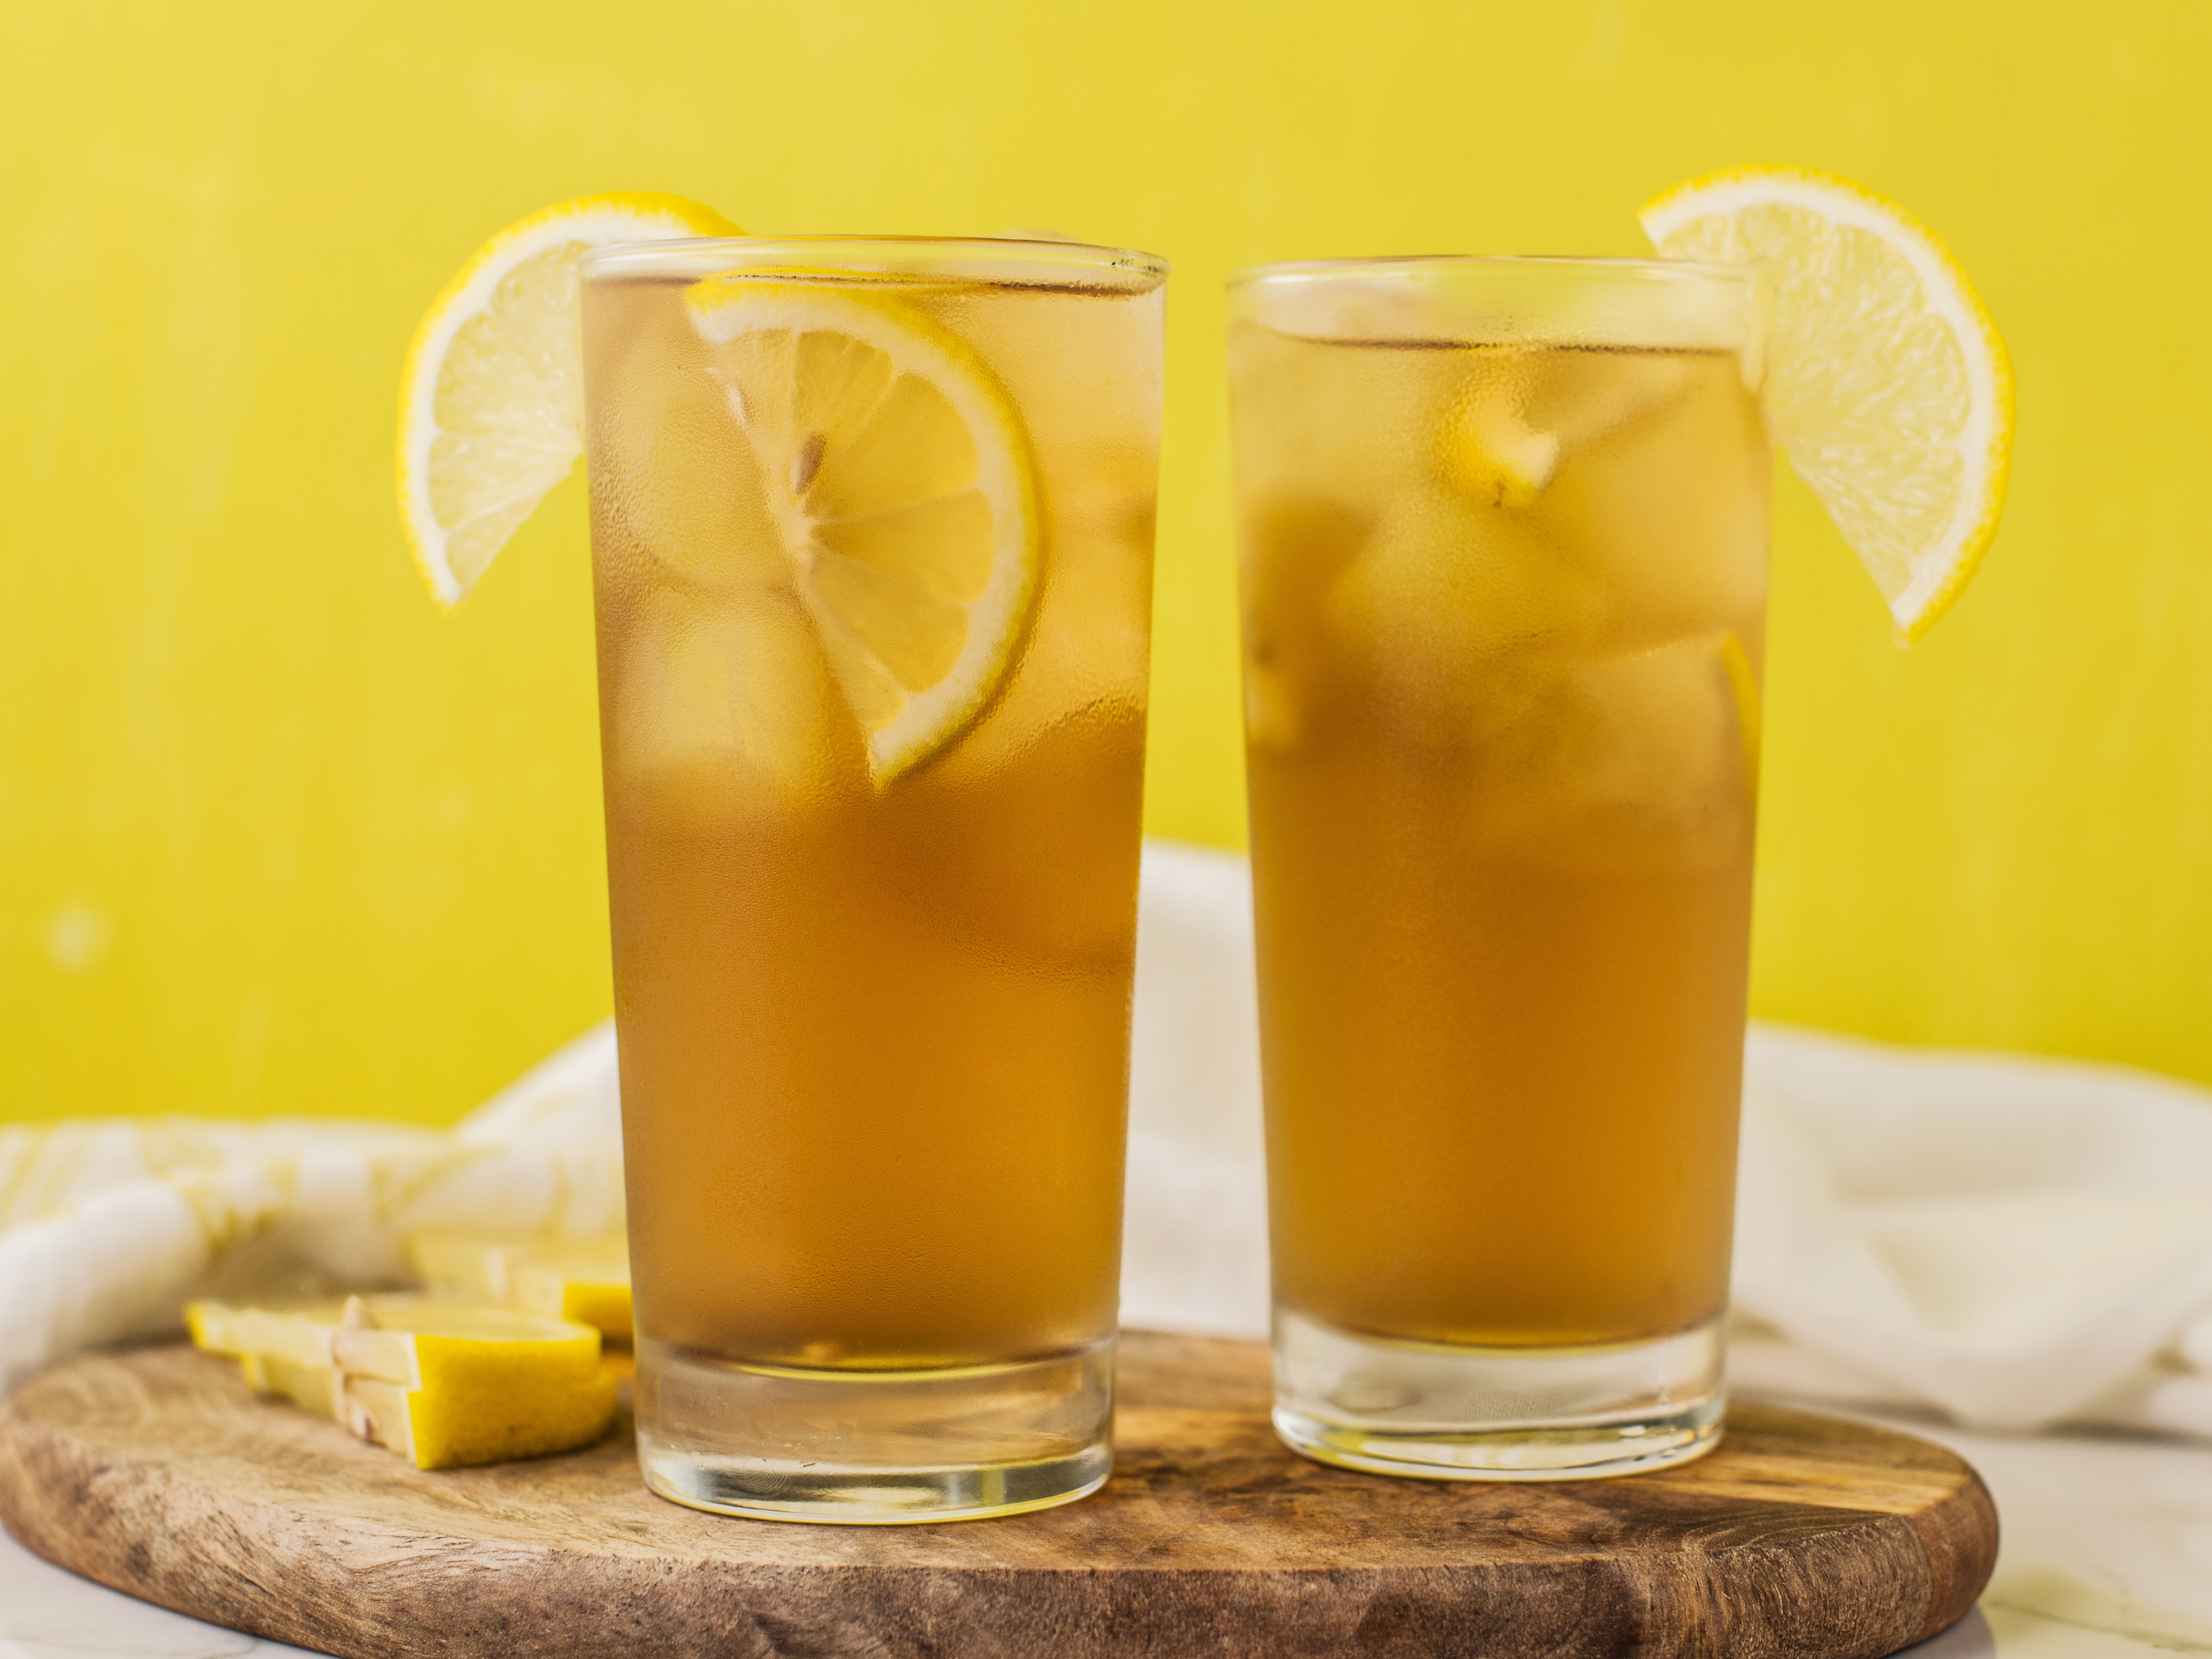 How To Mix Up A Great Arnold Palmer Mixed Drink